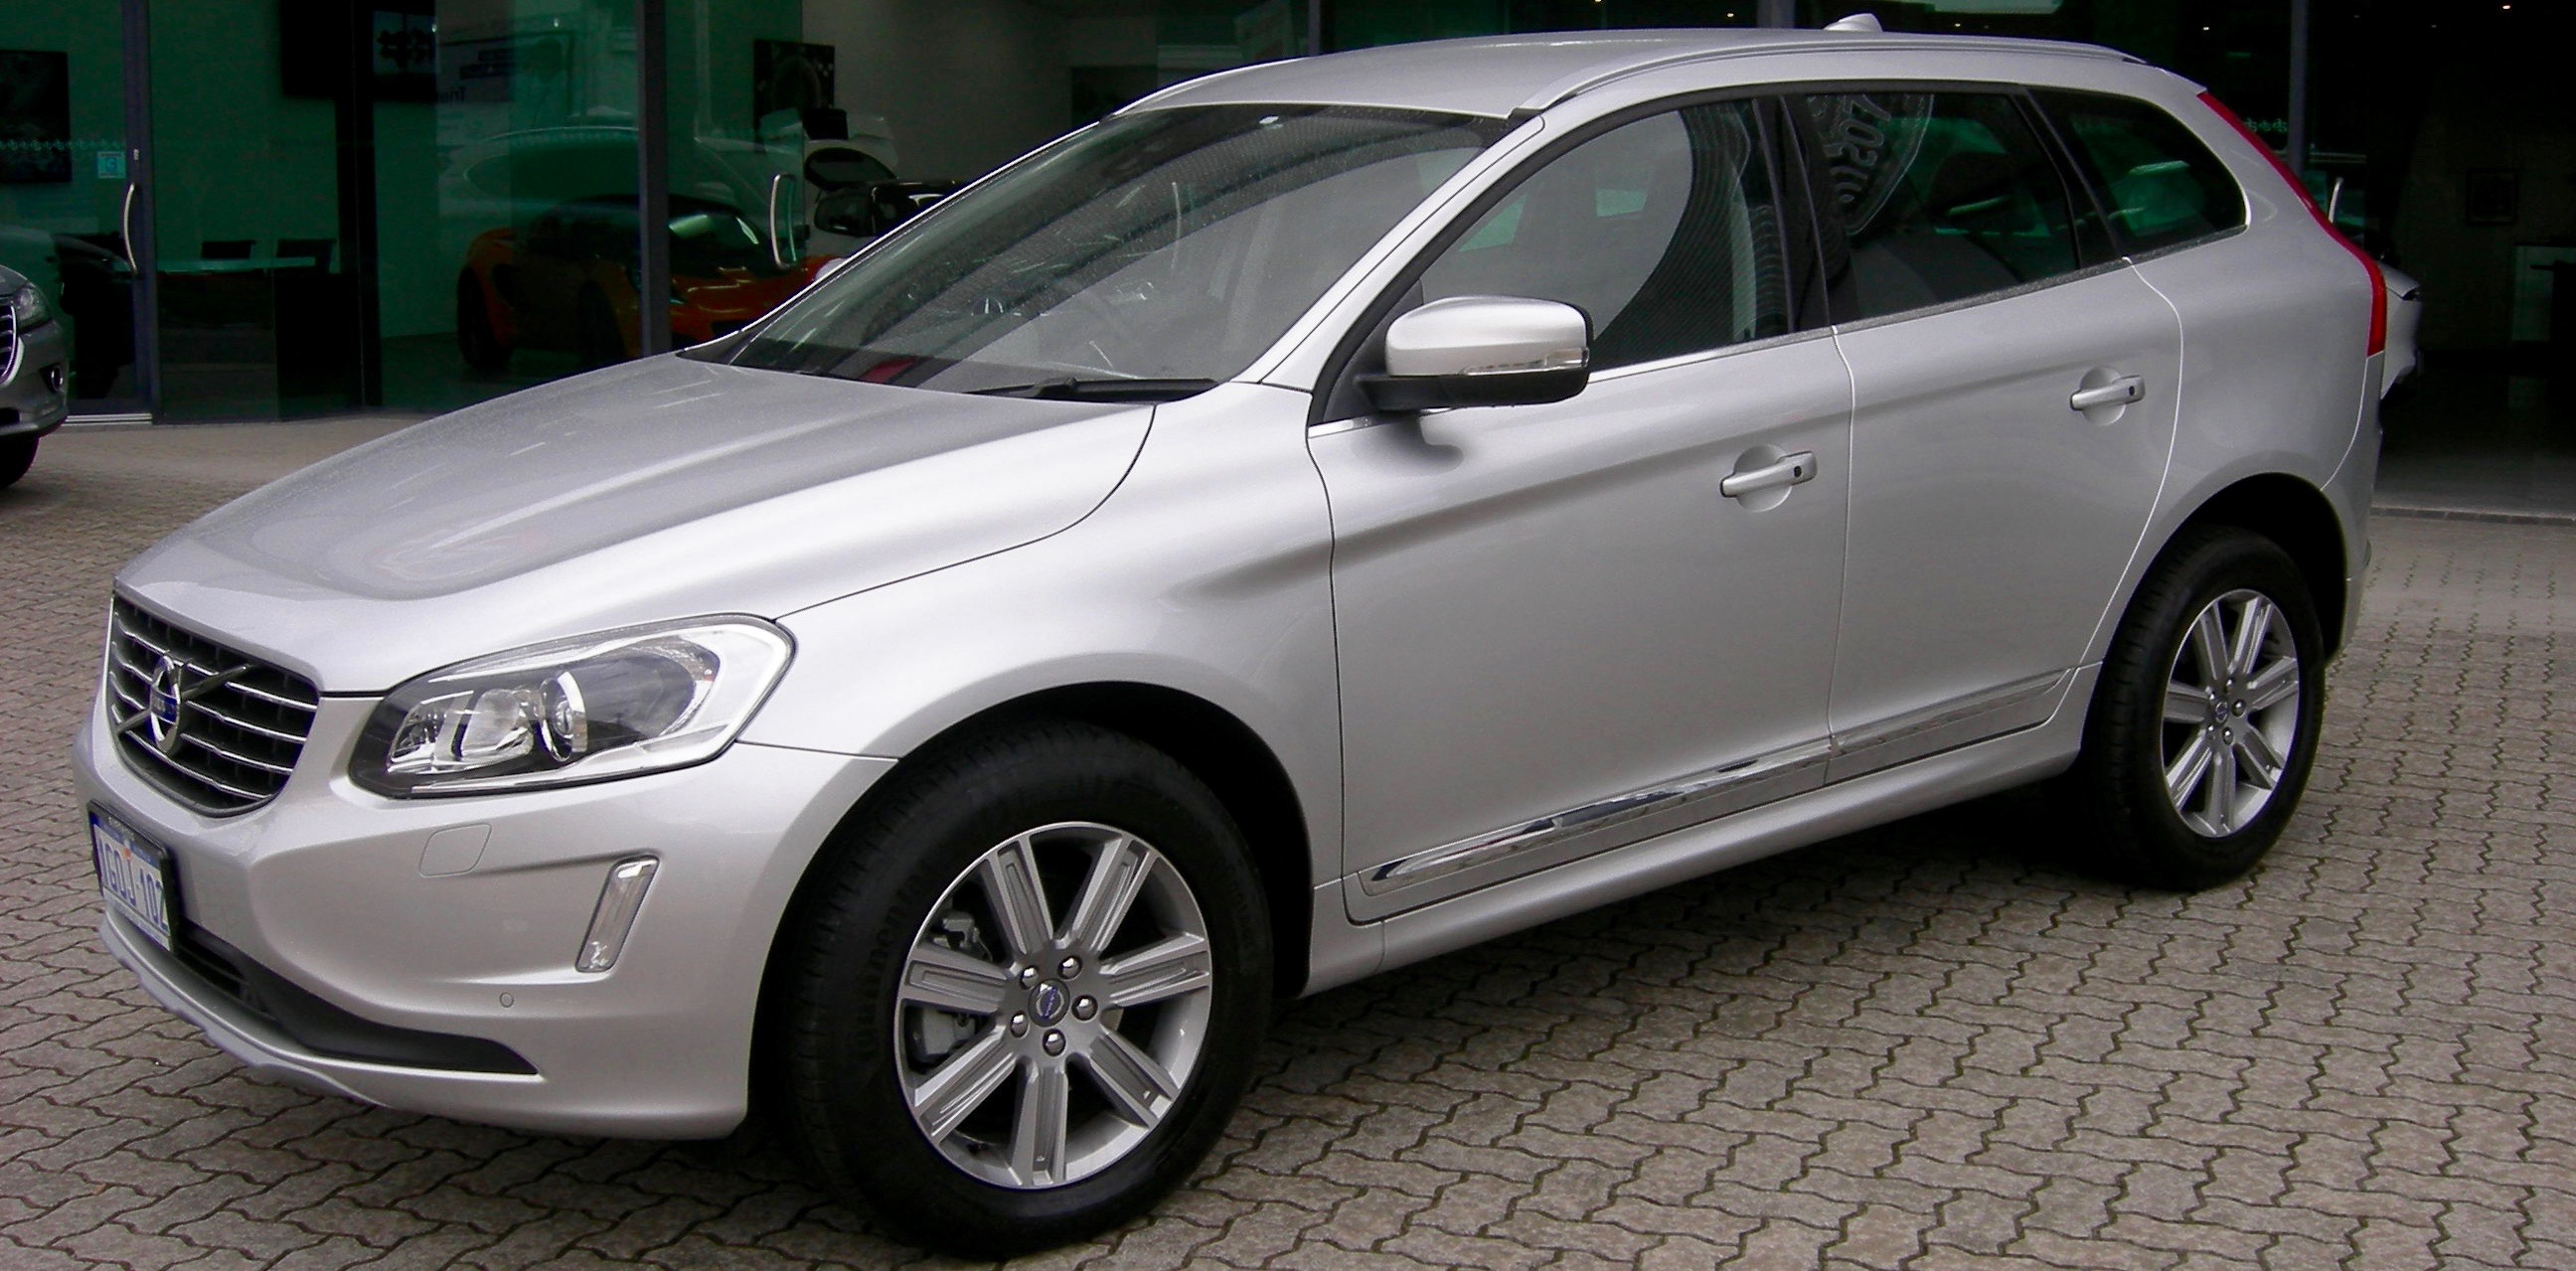 2015 Volvo XC60 D5 for sale in Perth